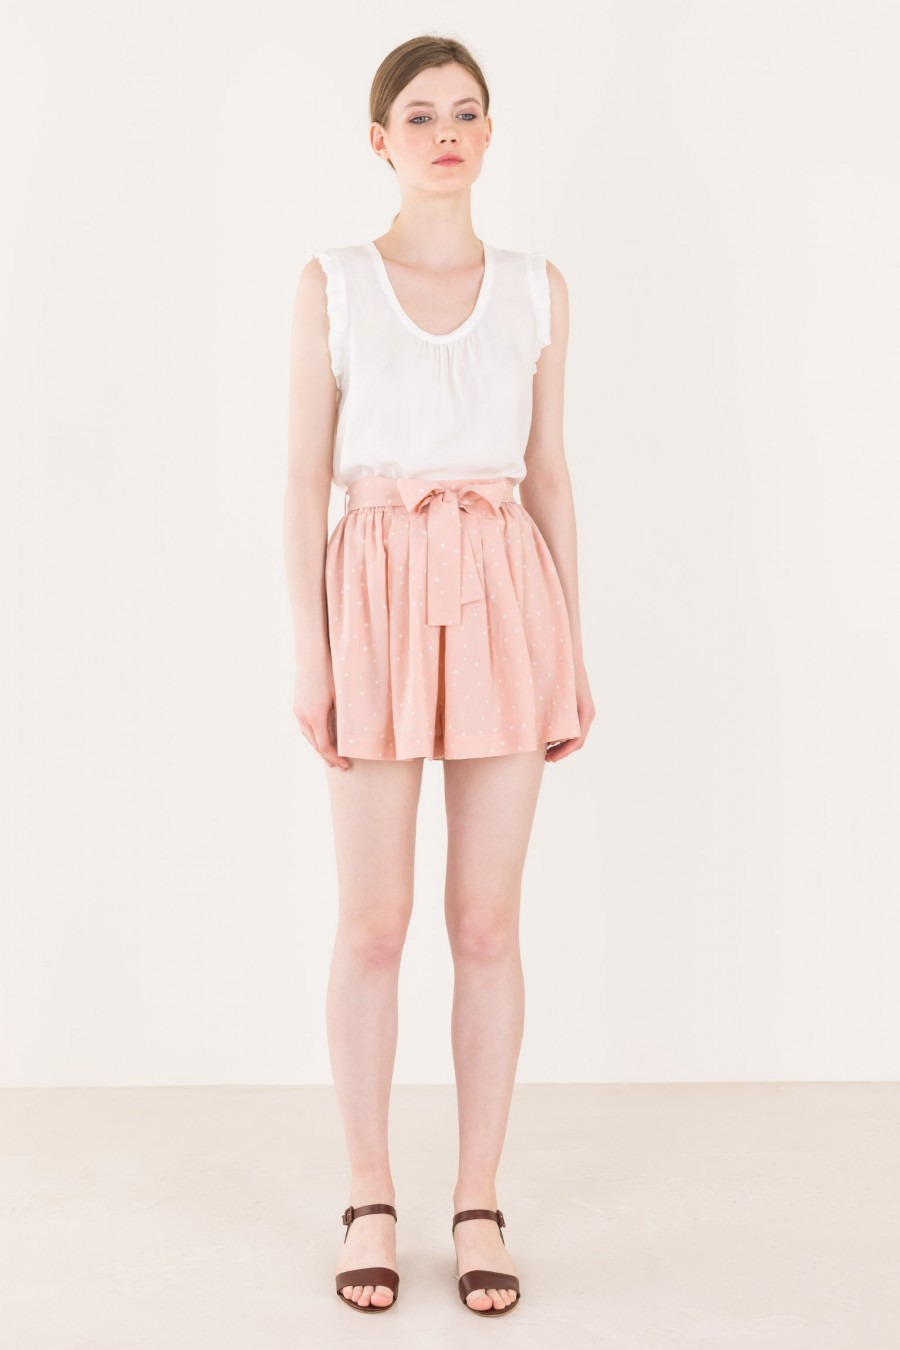 Pink shorts with white stars